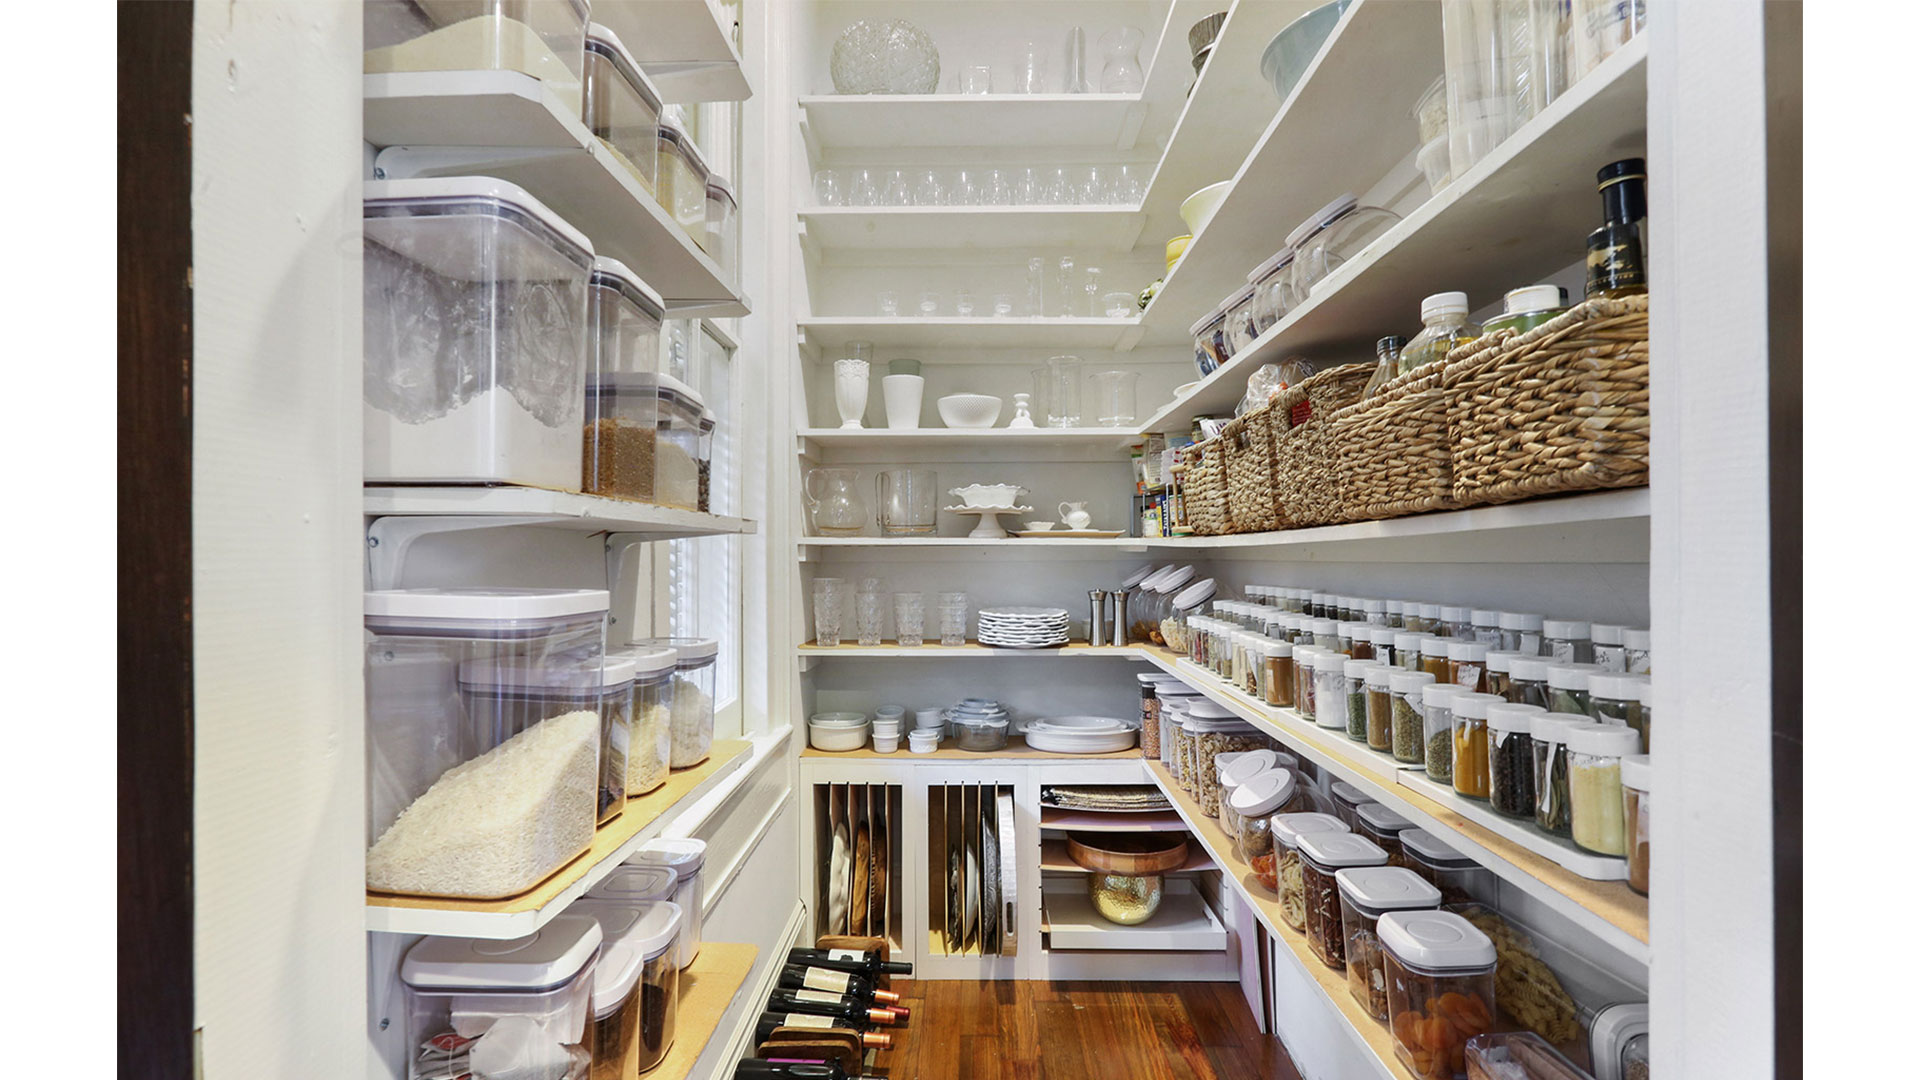 Pantry of Our Dreams